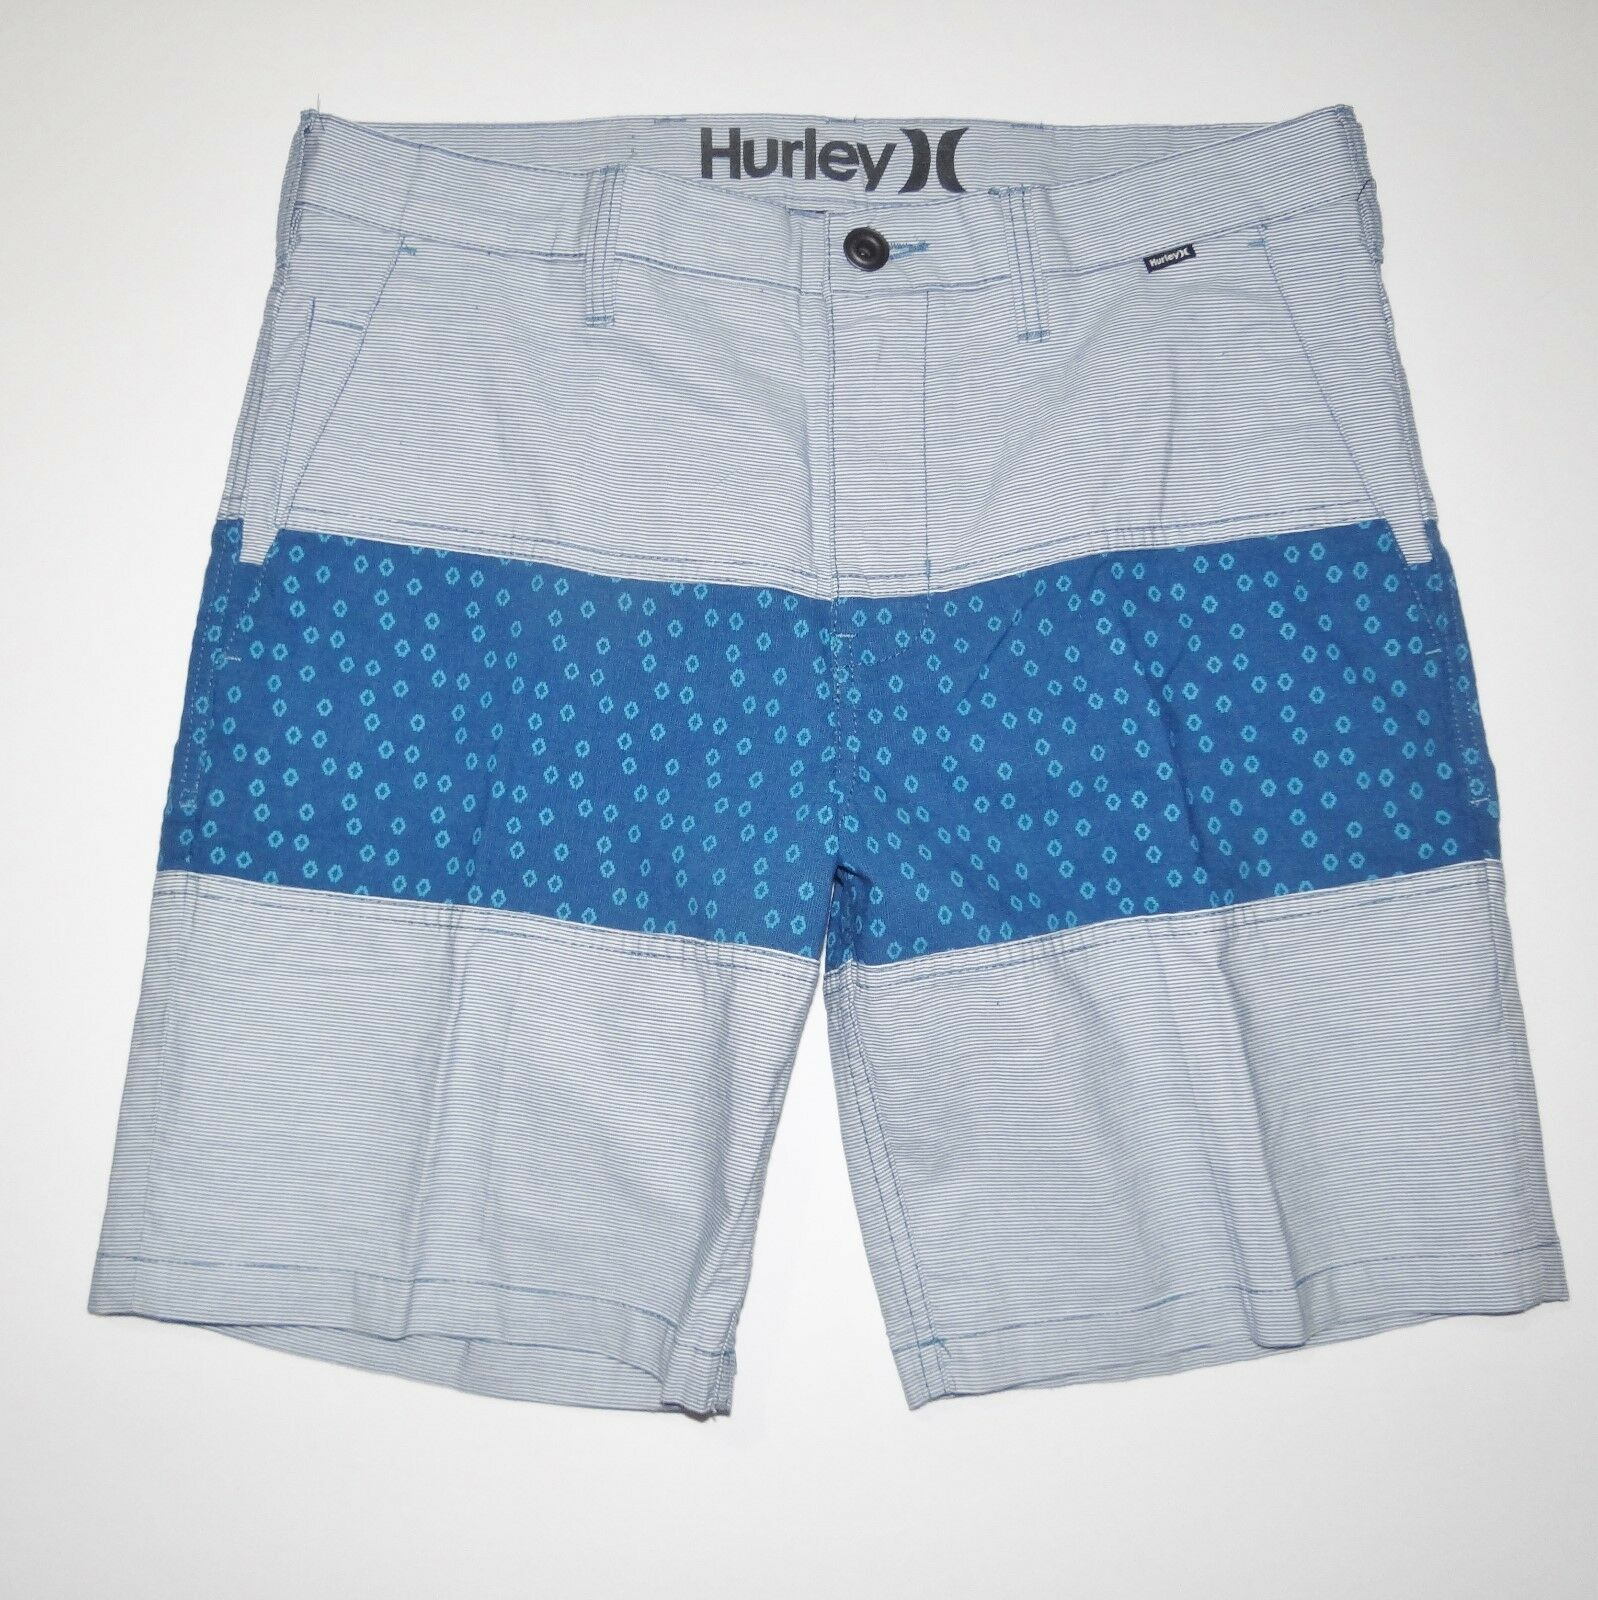 a6d9911b66ff91 New Mens 19 Cotton Casual Walk Shorts Size 32 Hurley Loma ...